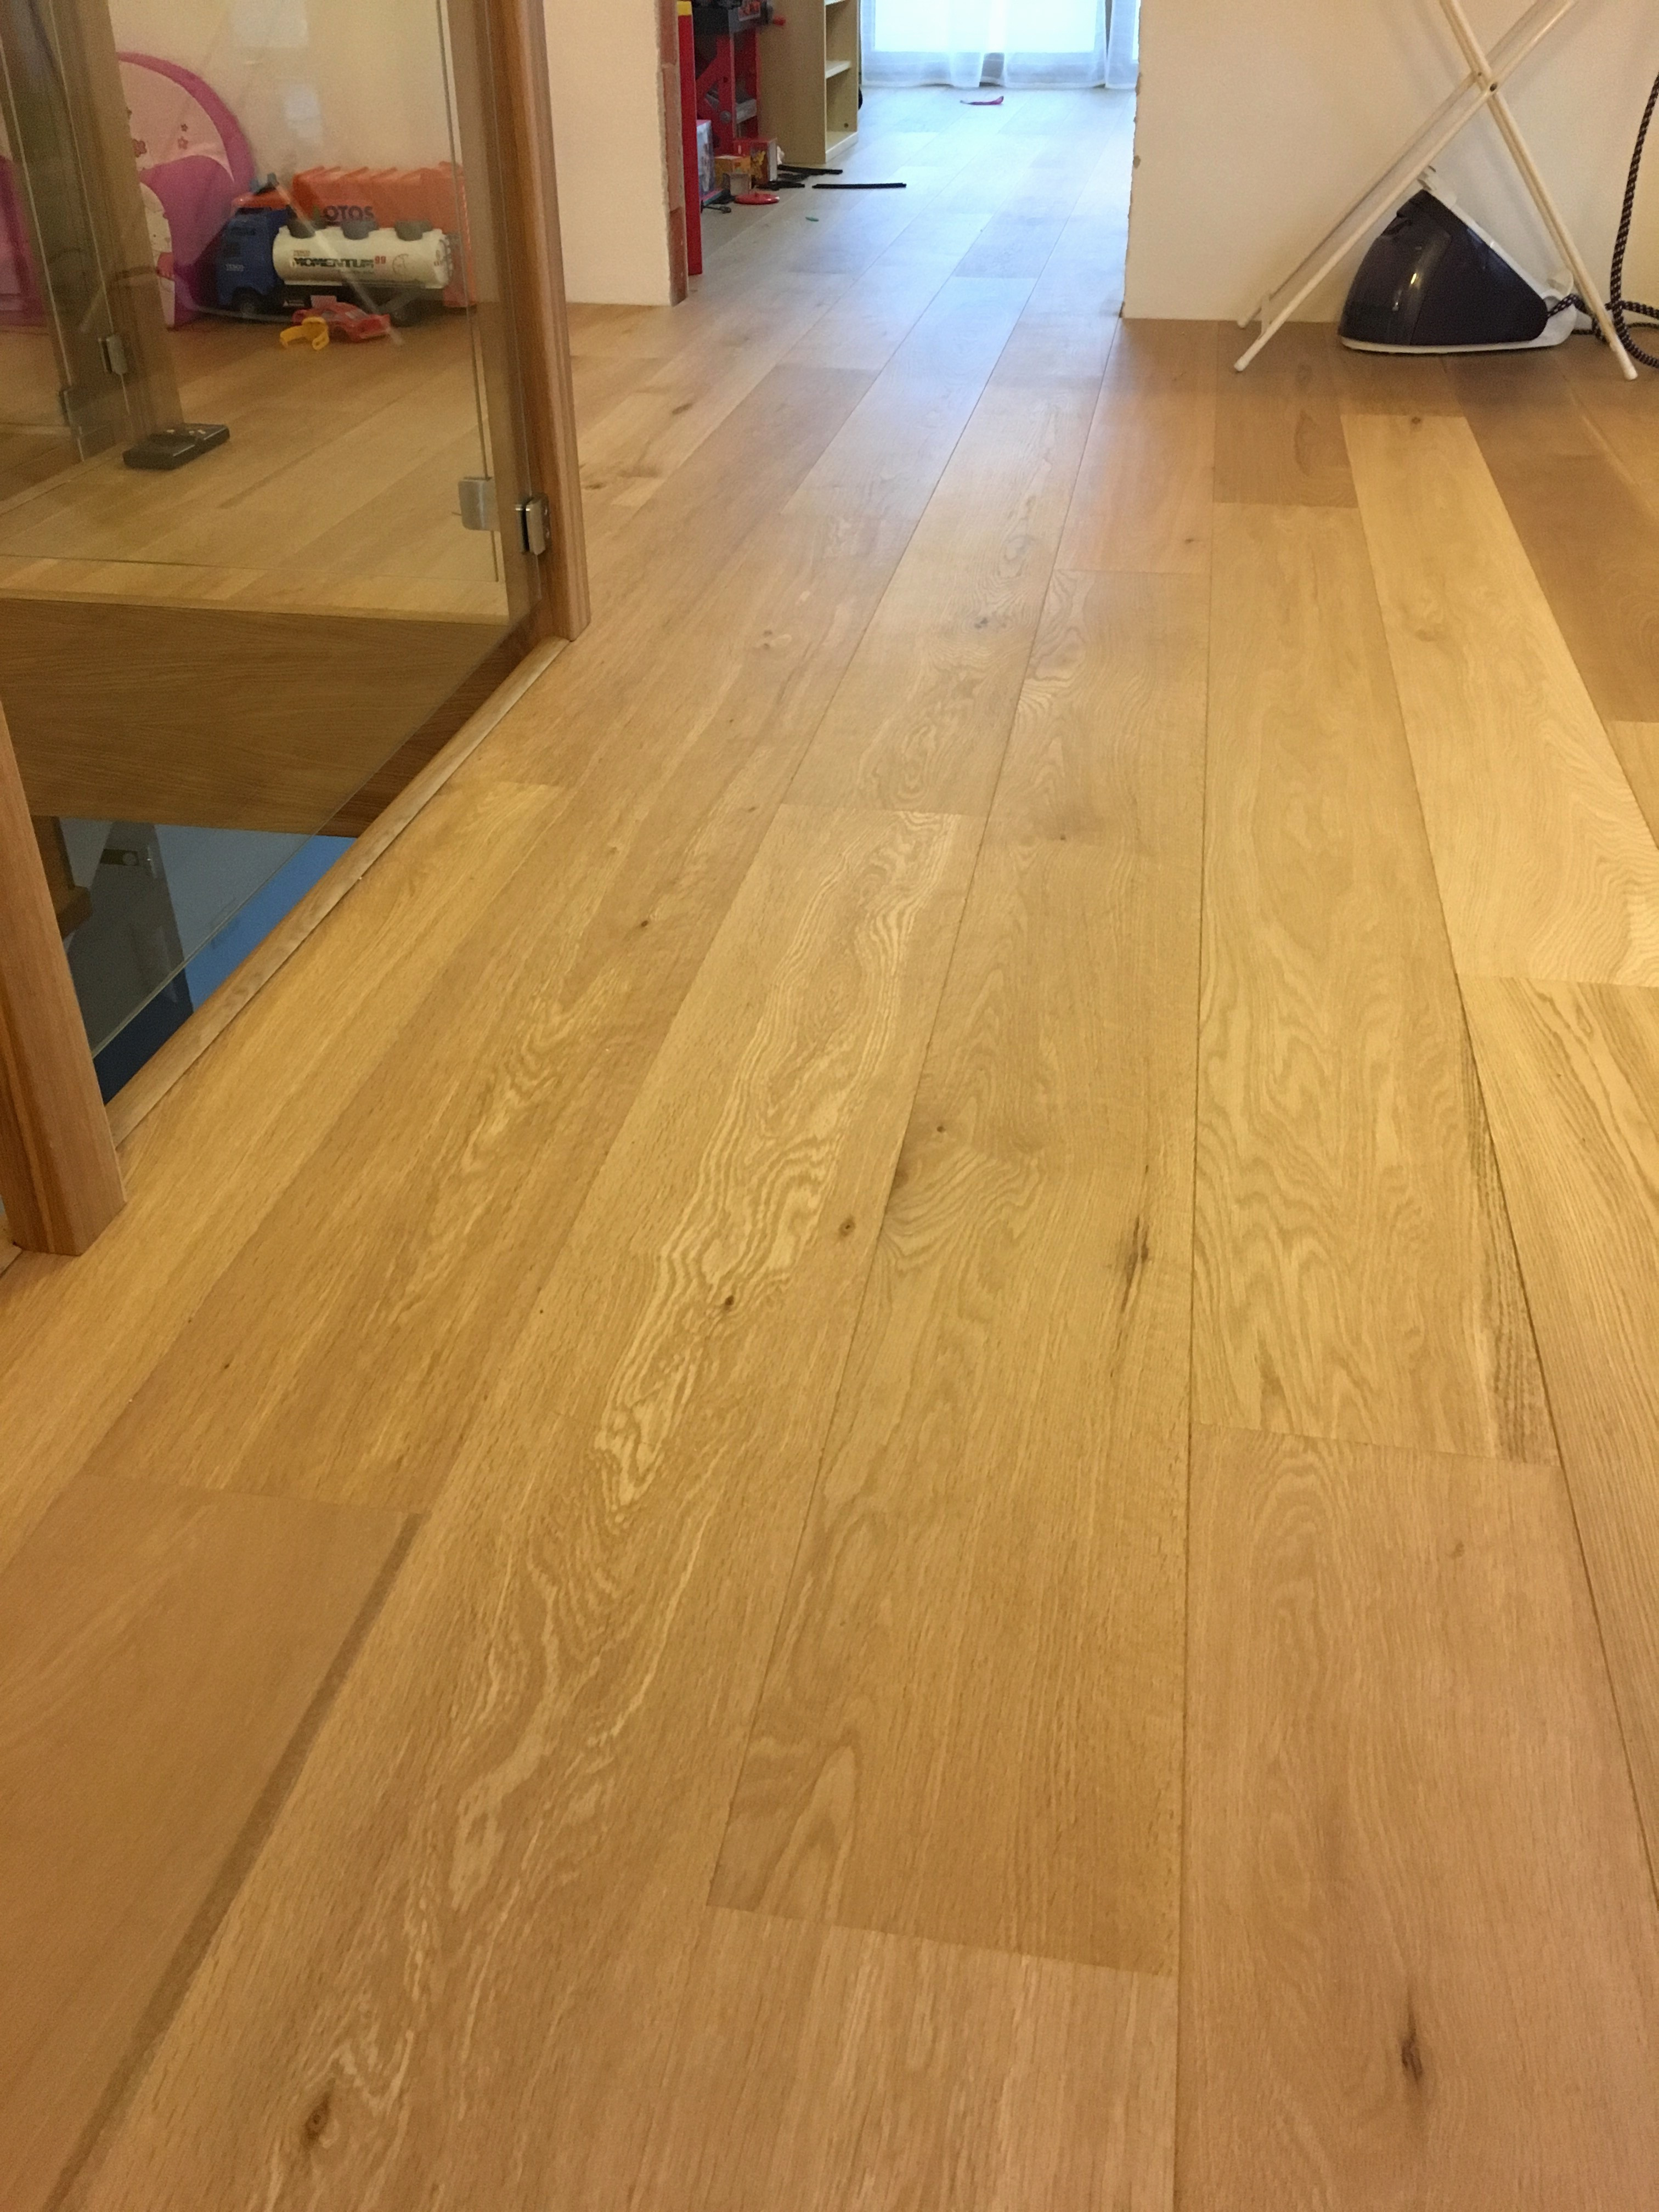 sandless hardwood floor refinishing products of 19 unique how much does it cost to refinish hardwood floors gallery within how much does it cost to refinish hardwood floors fresh wp content 2018 07 ho gallery